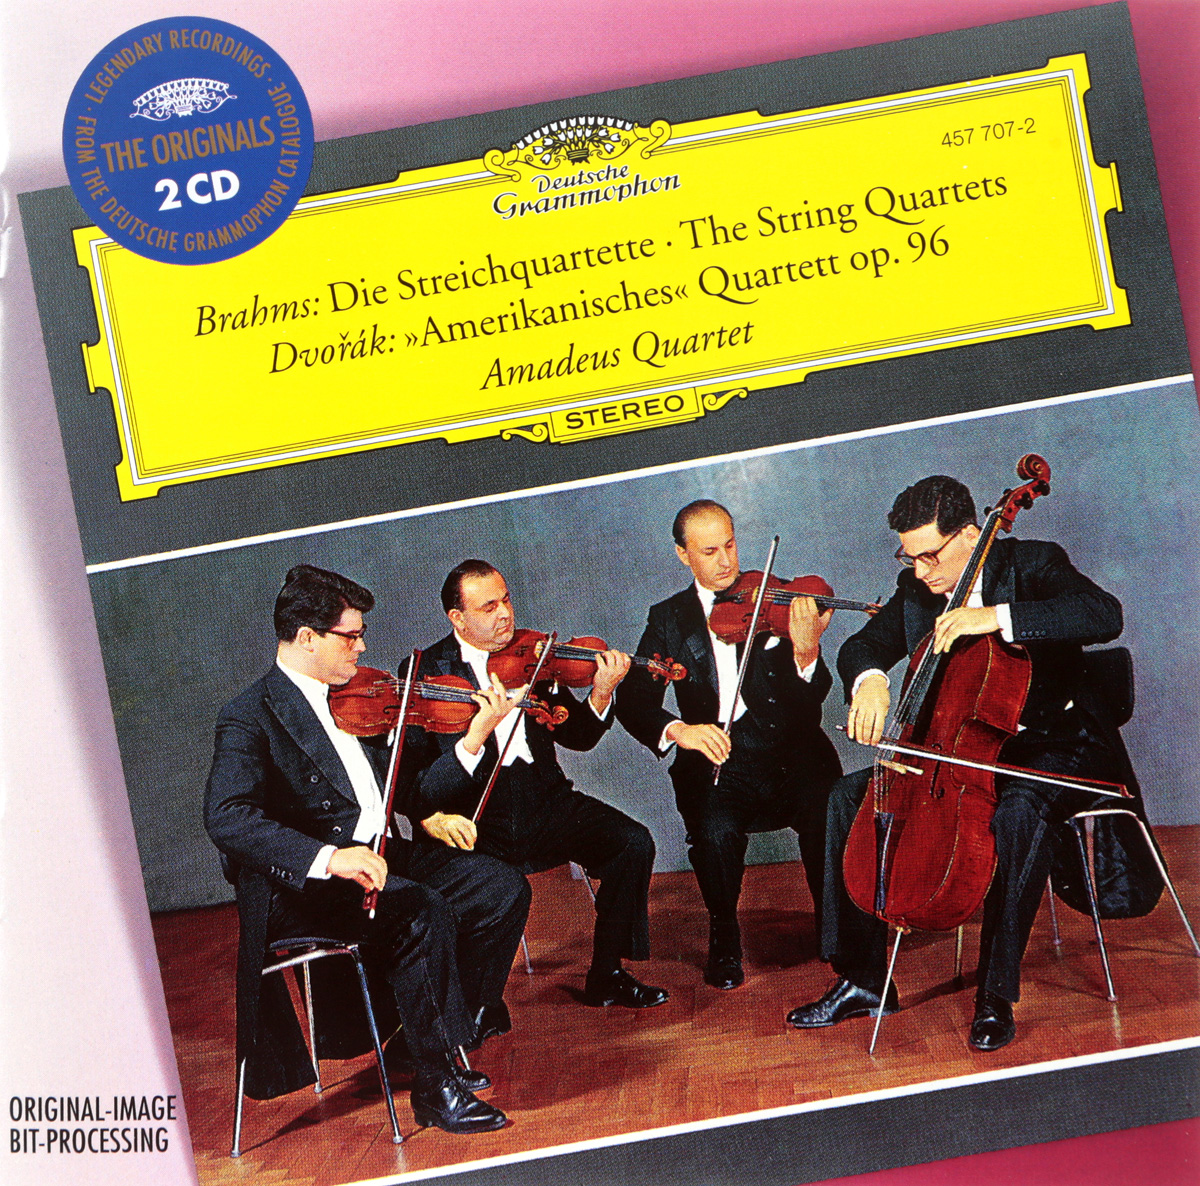 Brahms, Dvorak, Amadeus-Quartett - Brahms: The String Quartets - Dvorak: String Quartet American (2 CD) антонин дворжак antonin dvorak vlach quartet string quartet in g major op 106 lp